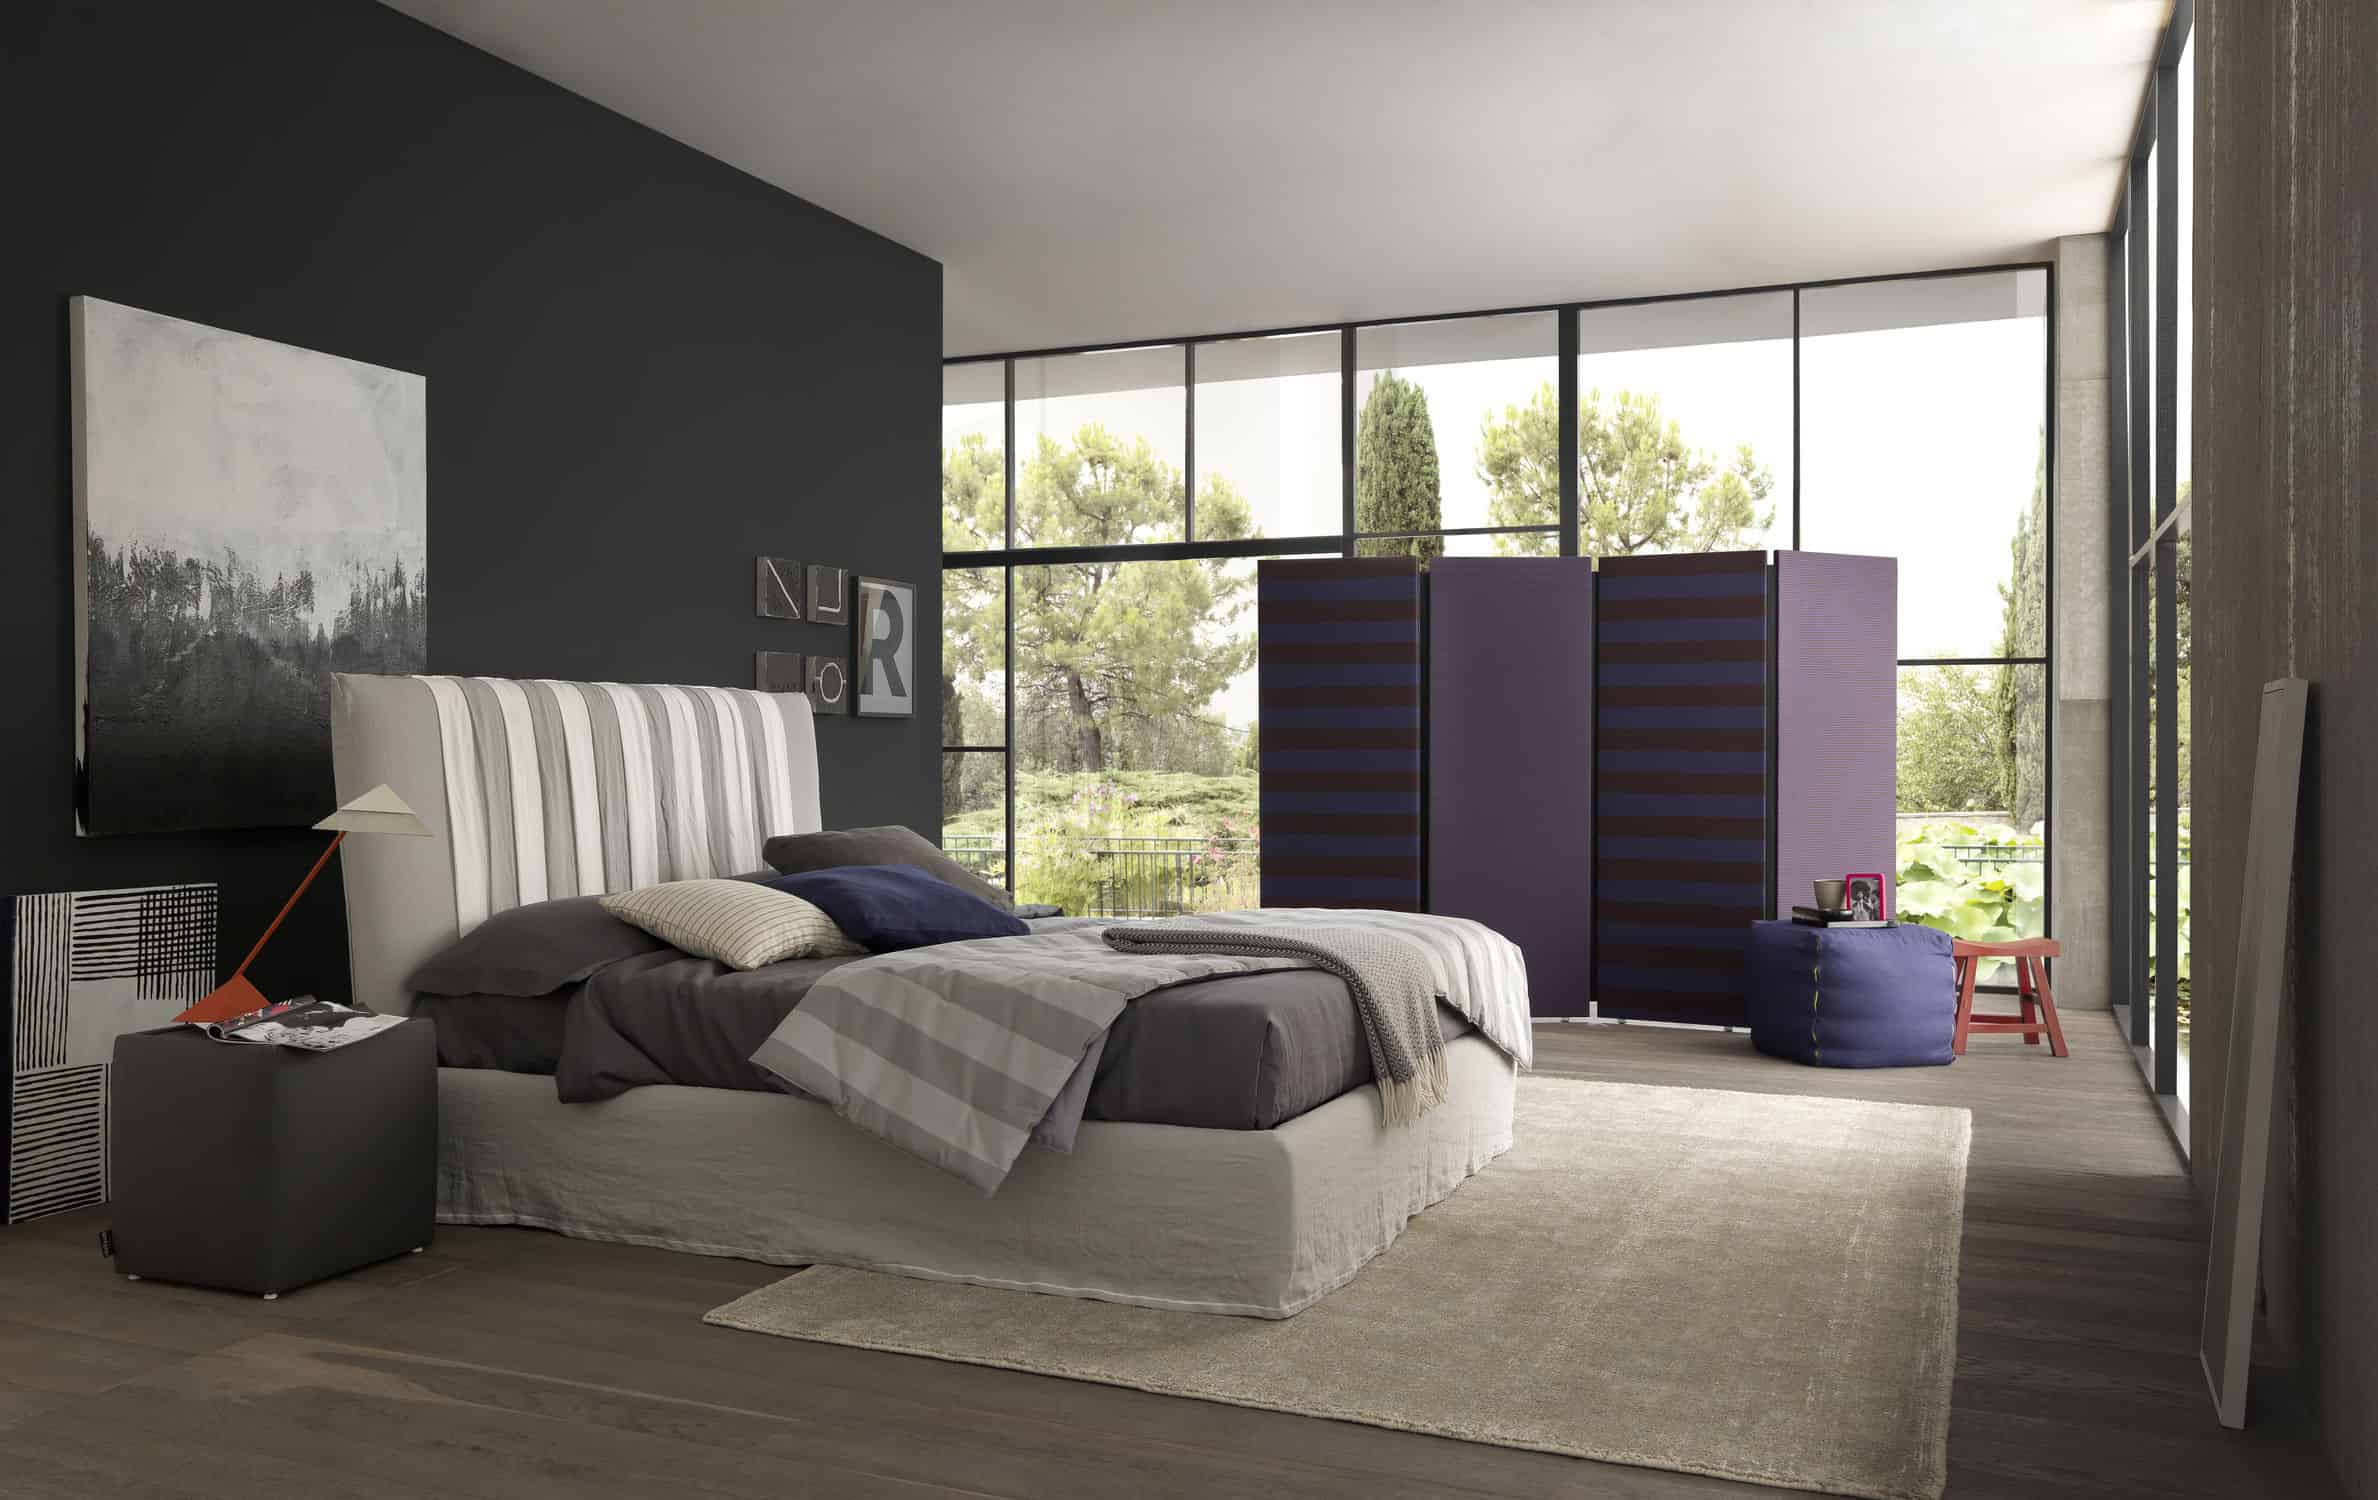 Bedroom Design Ideas Images 50 Modern Bedroom Design Ideas